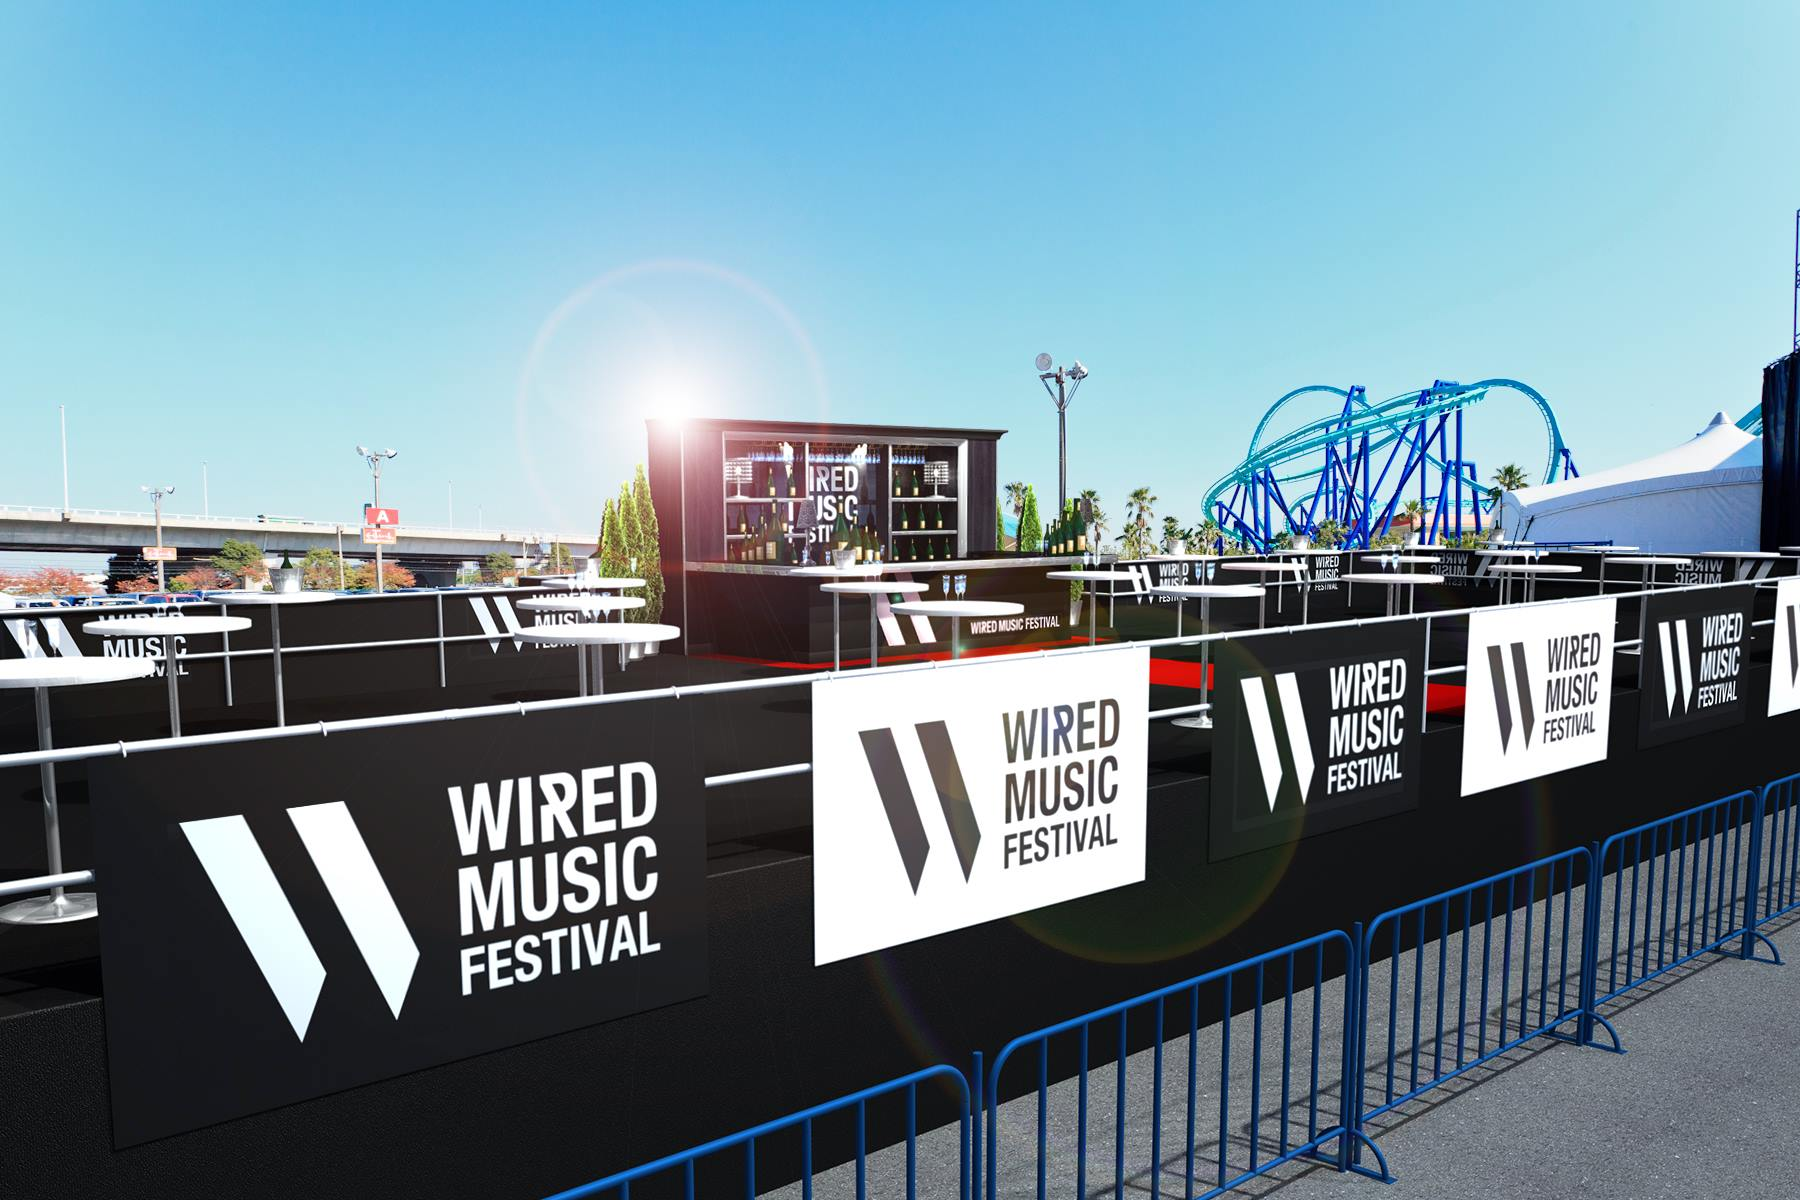 WIRED MUSIC FESTIVAL 2016 VIP